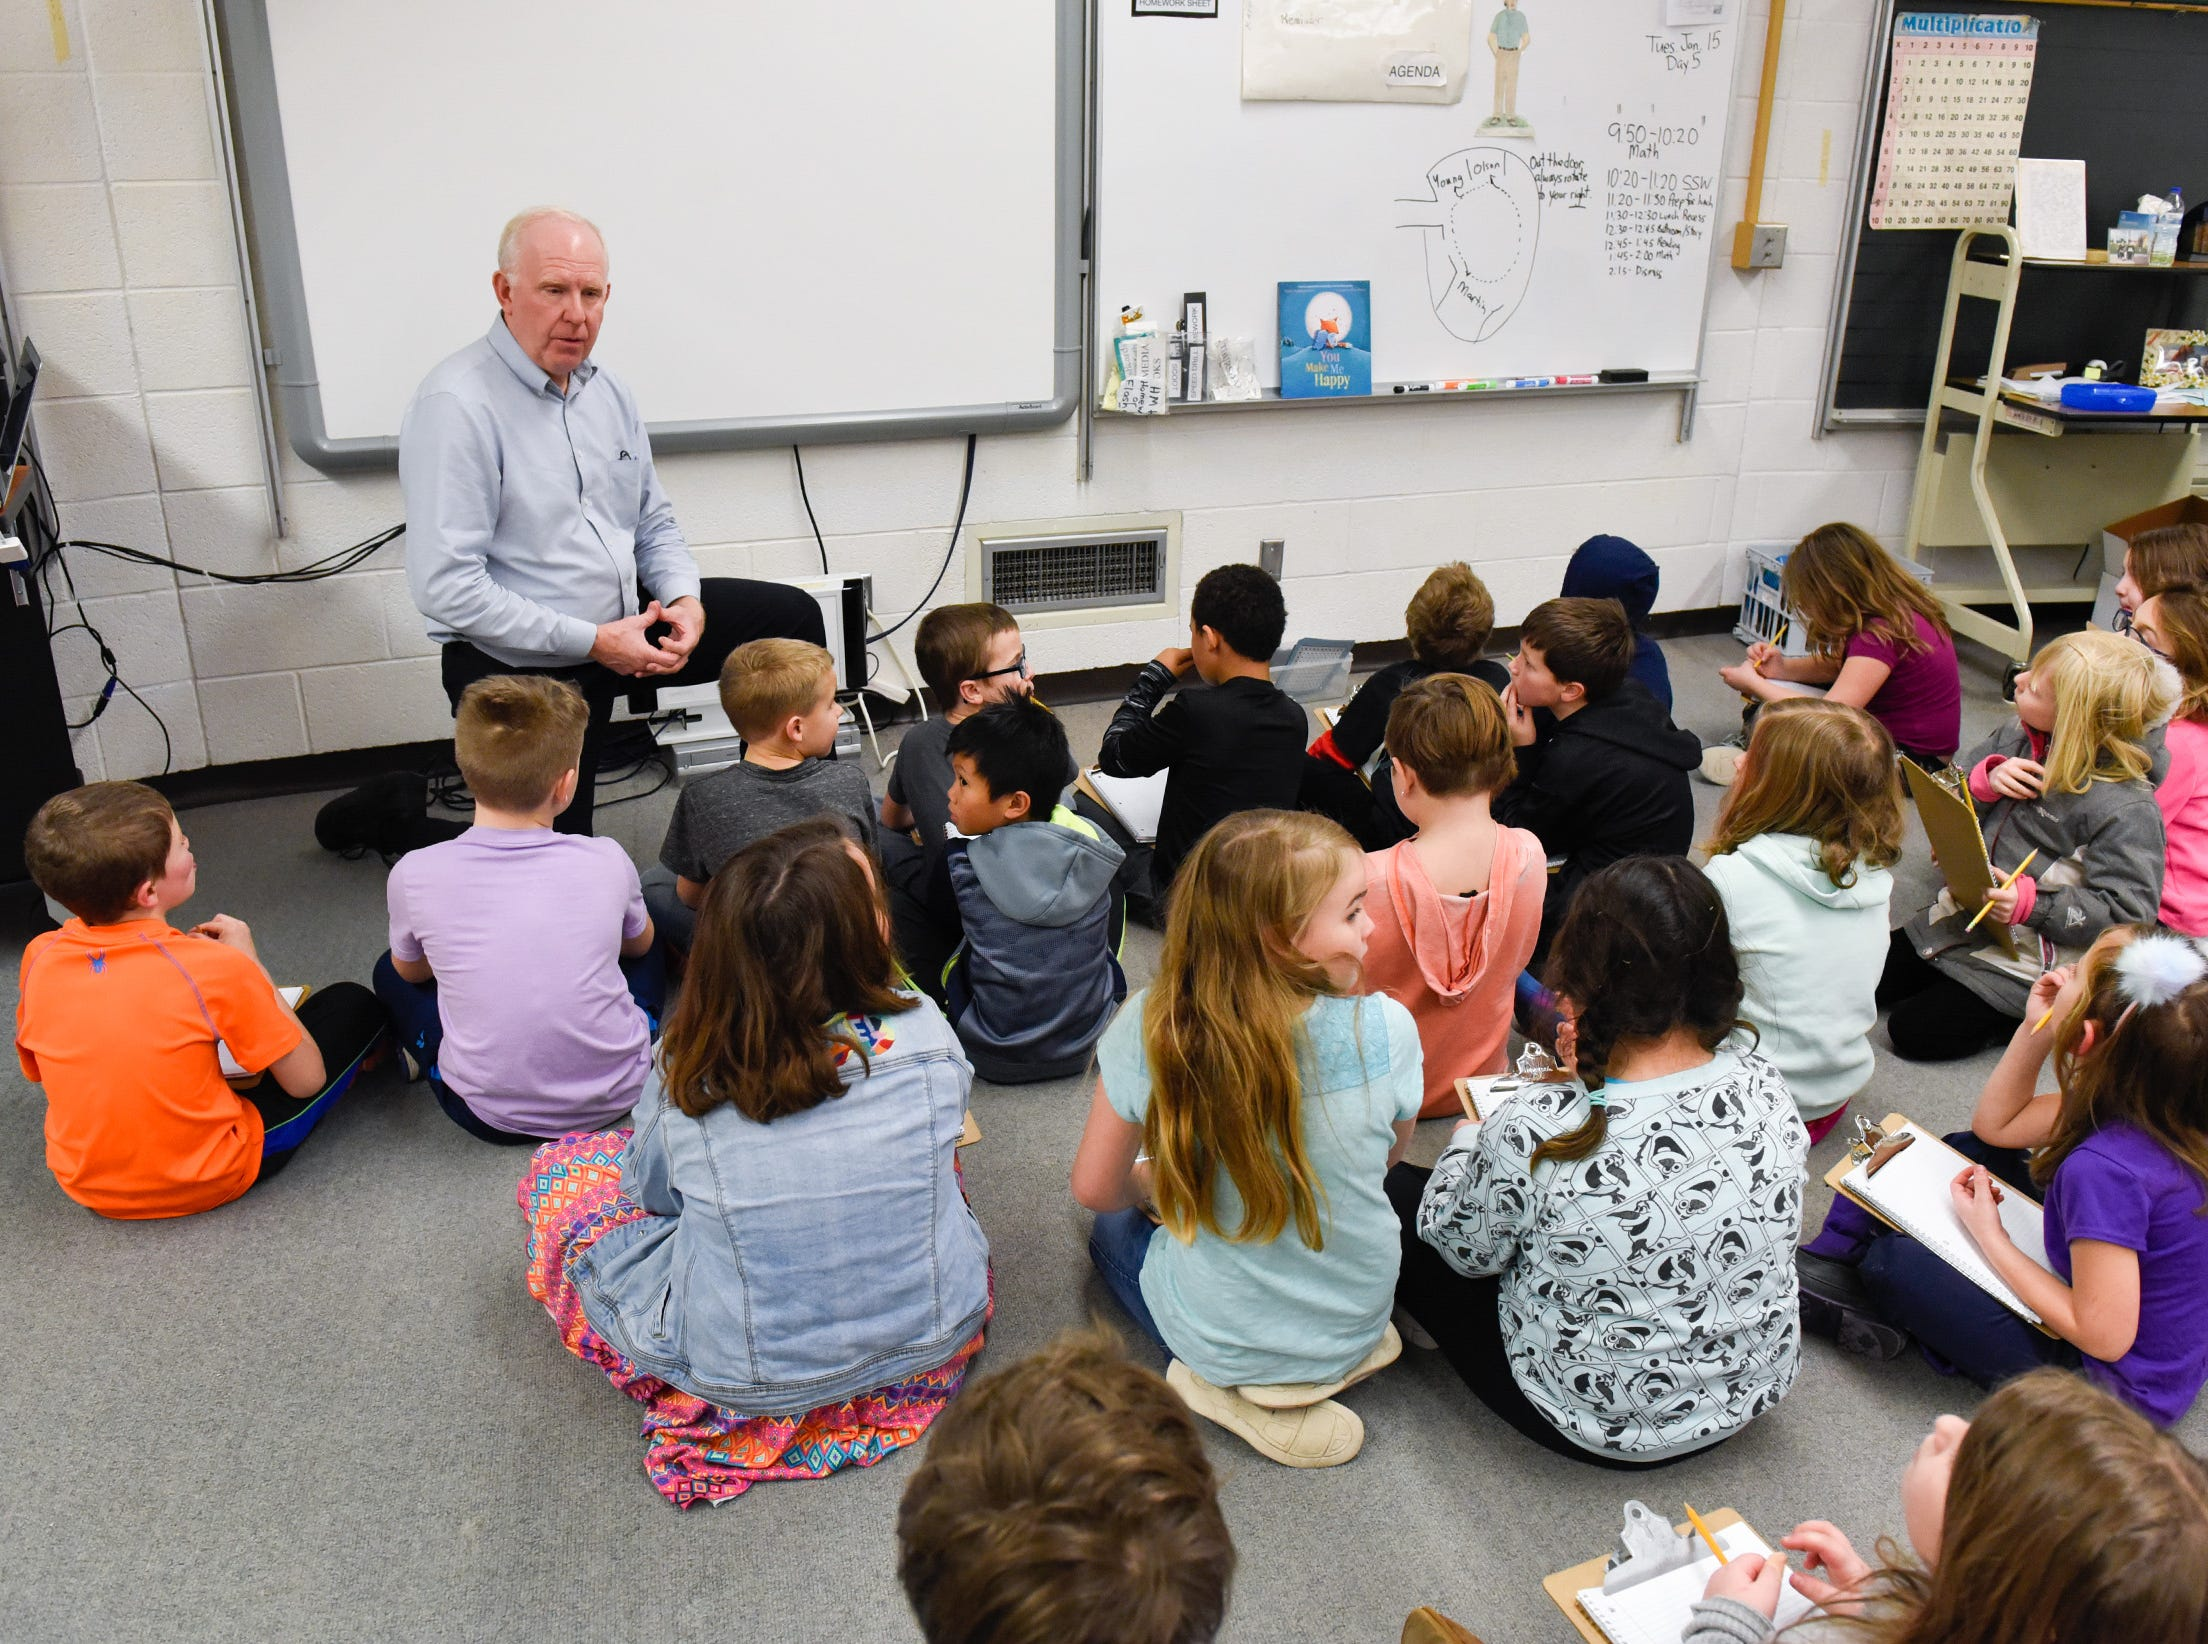 Teacher Brad Olson talks with students as they settle into their new classroom area Tuesday, Jan. 15, after a fire damaged classrooms at Pleasantview Elementary School in Sauk Rapids.